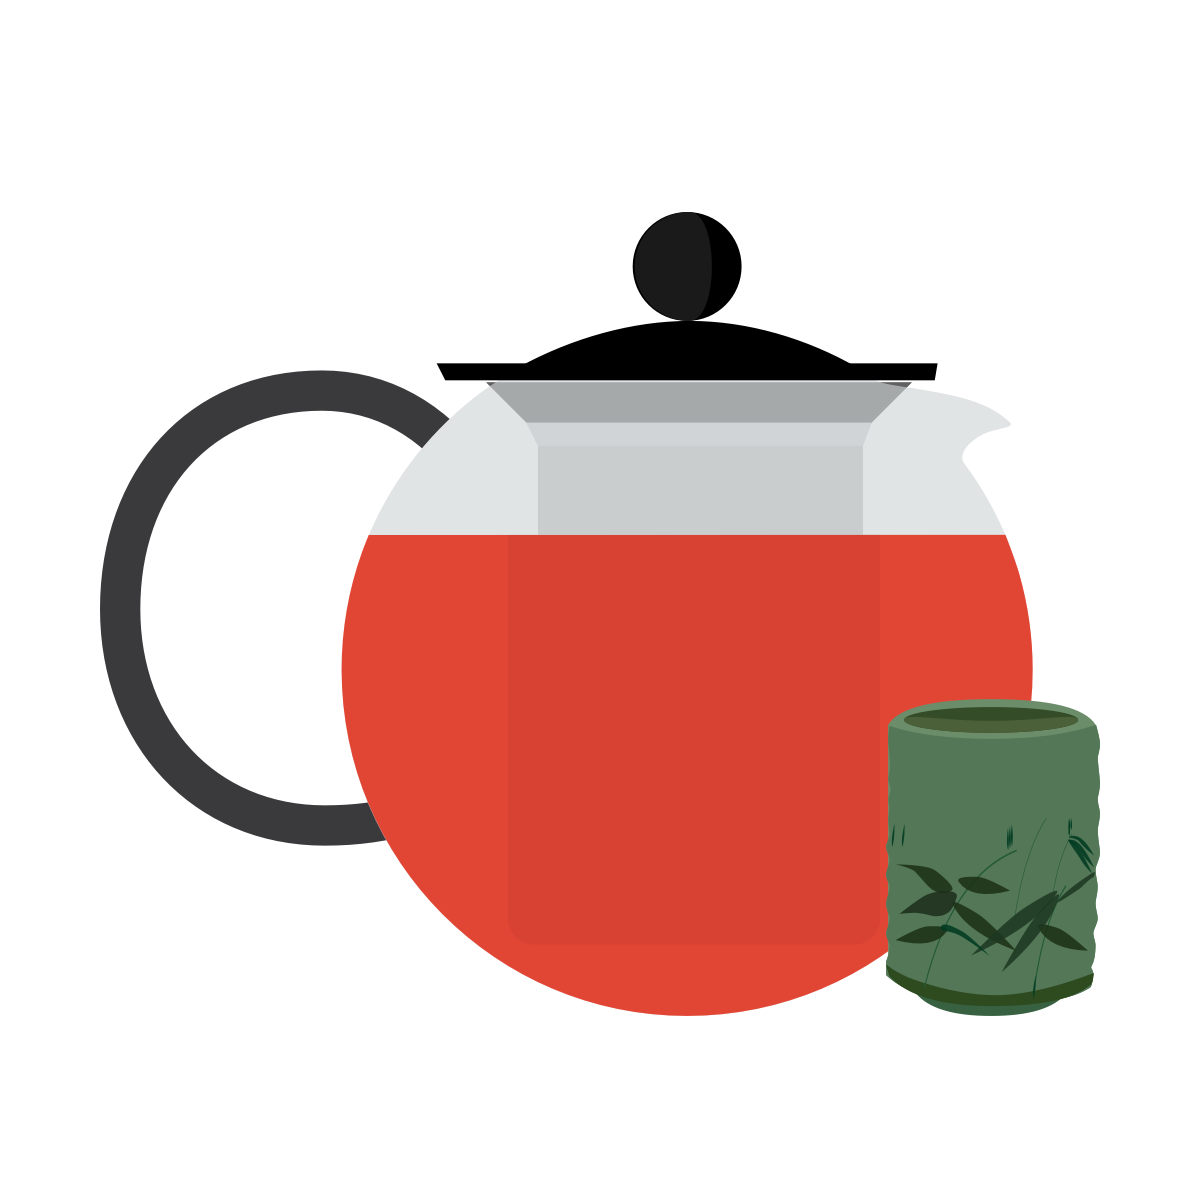 Crafty craft a better. Intolerable acts clipart cup tea